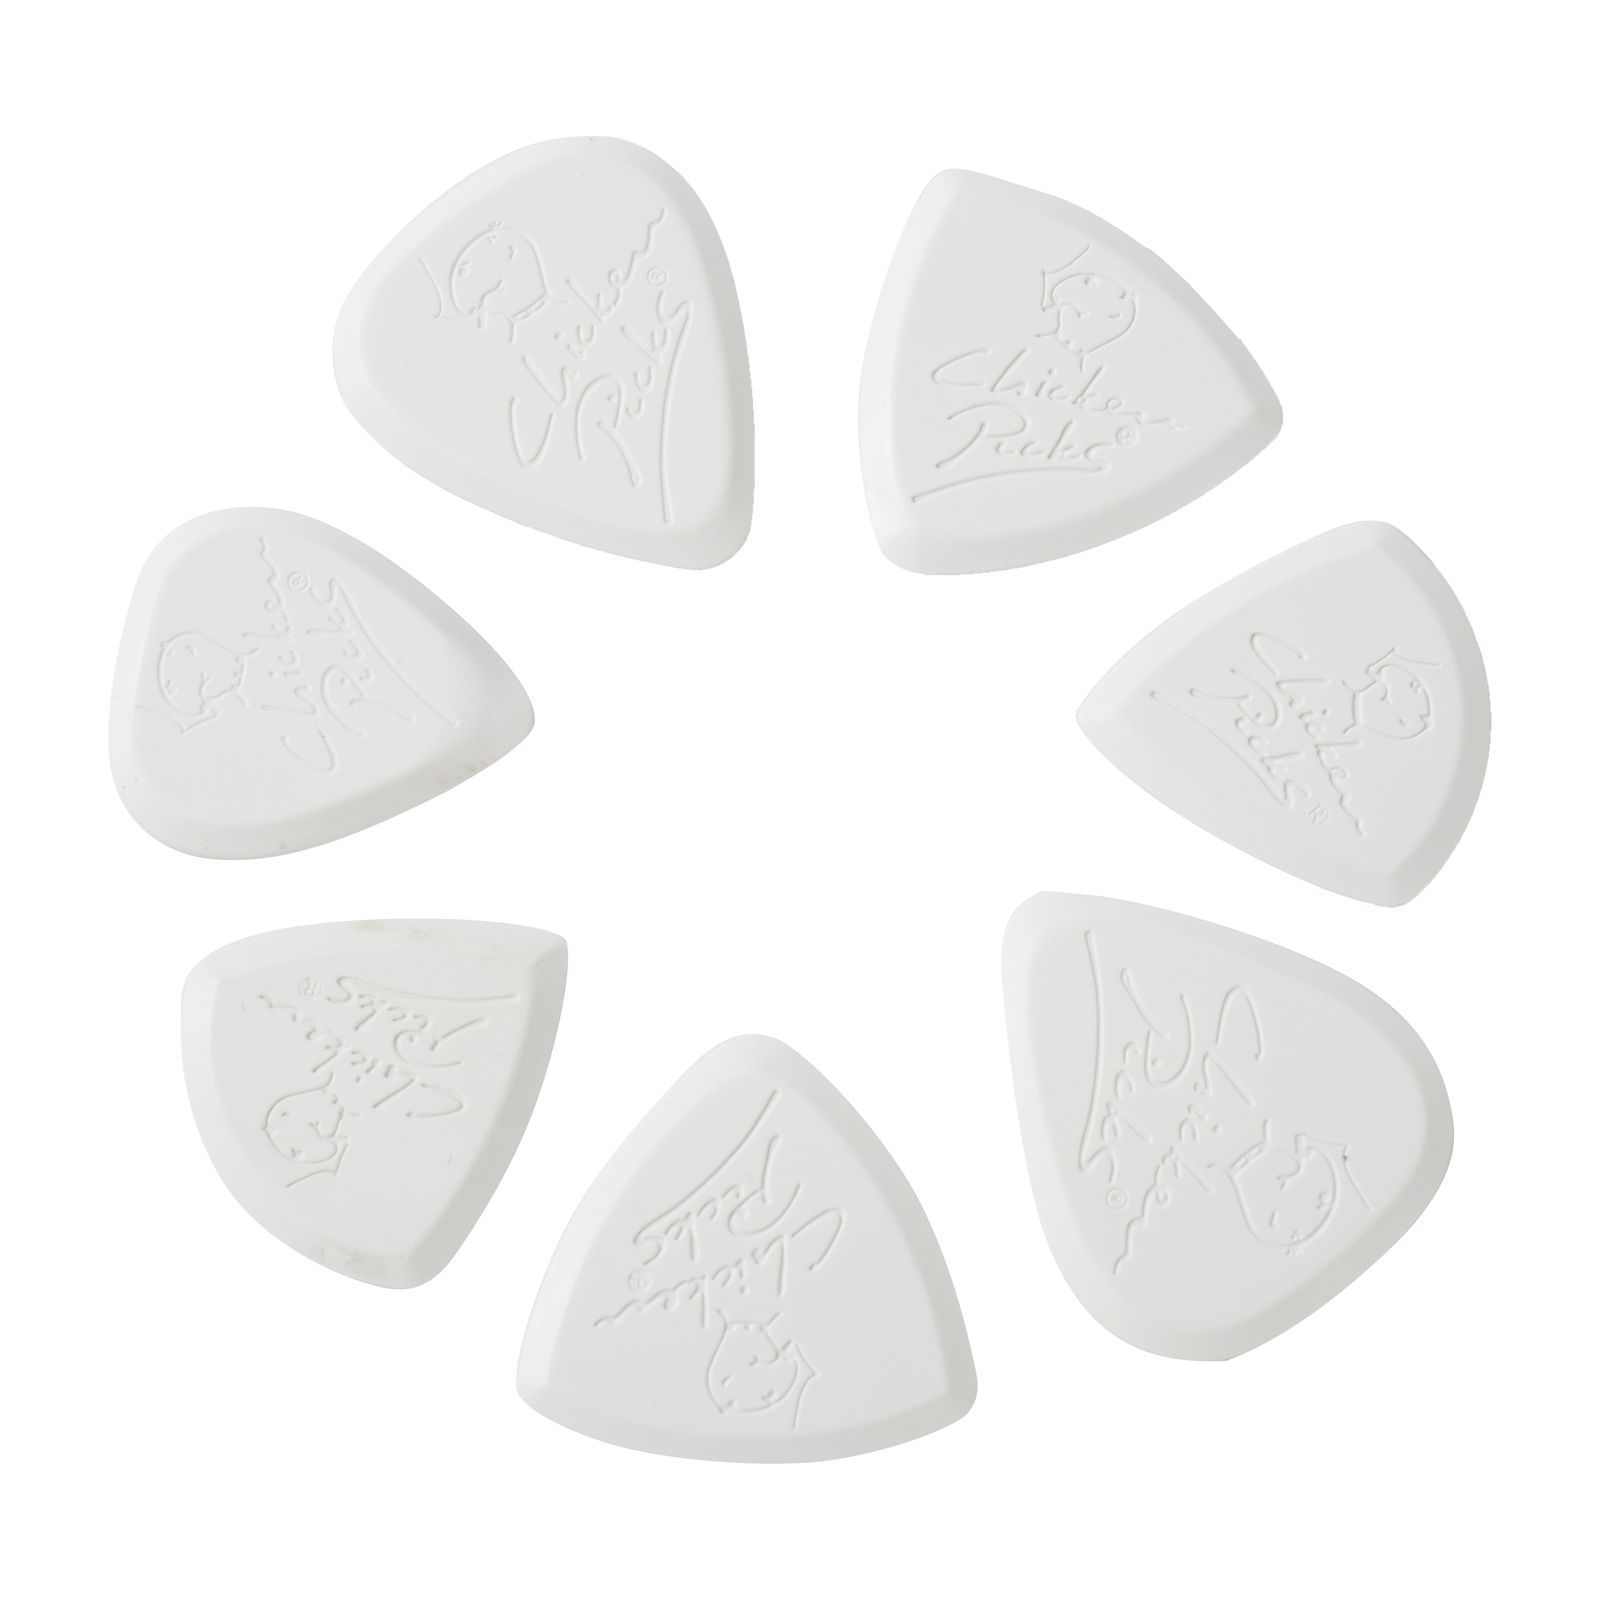 ChickenPicks Combi Pack Product Image